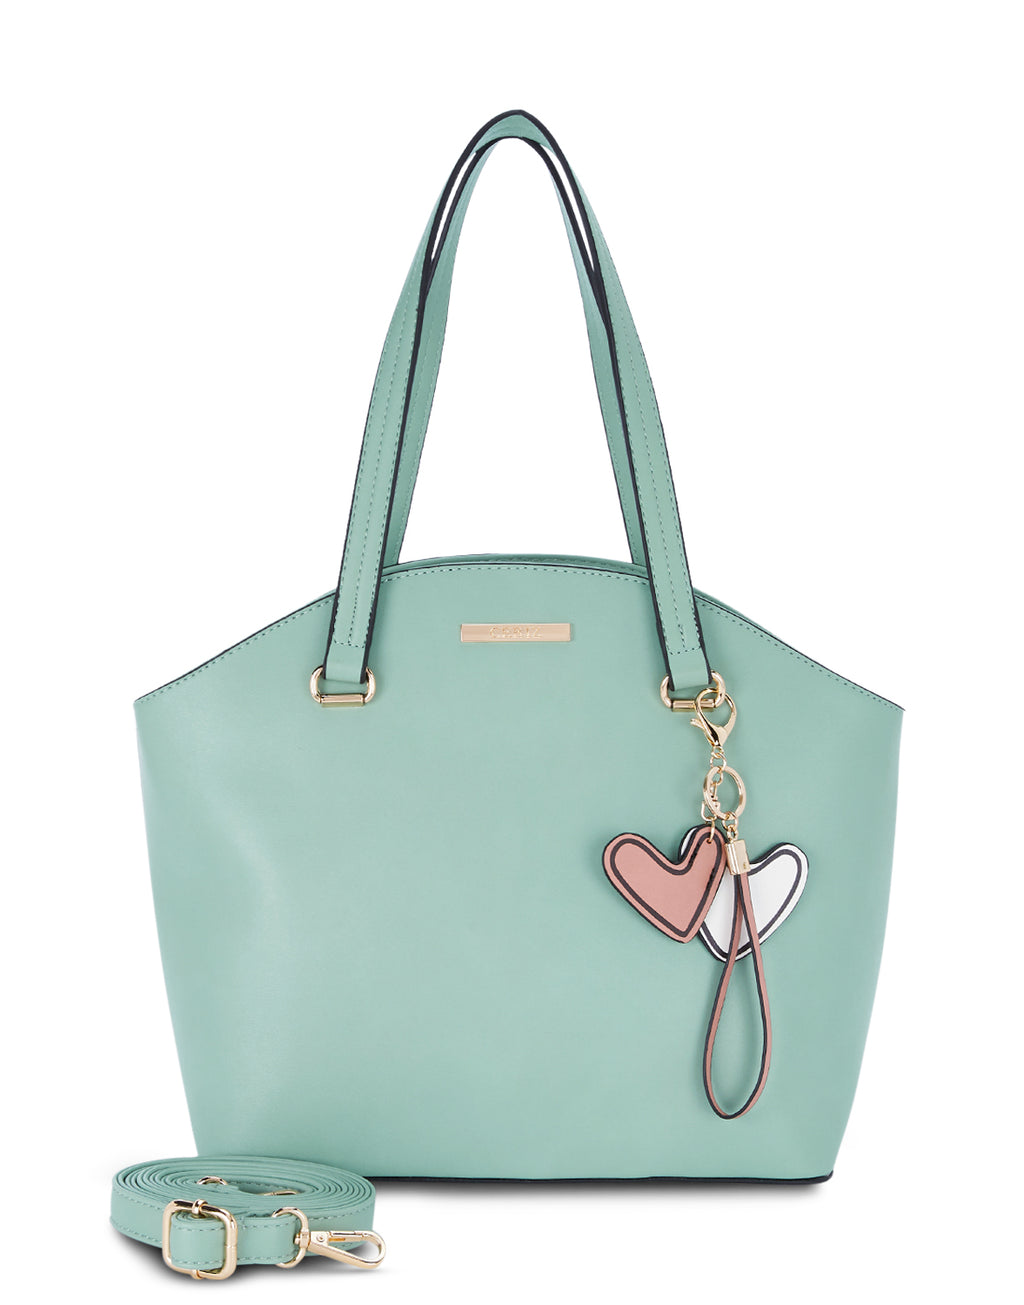 Alair Solid green Tote